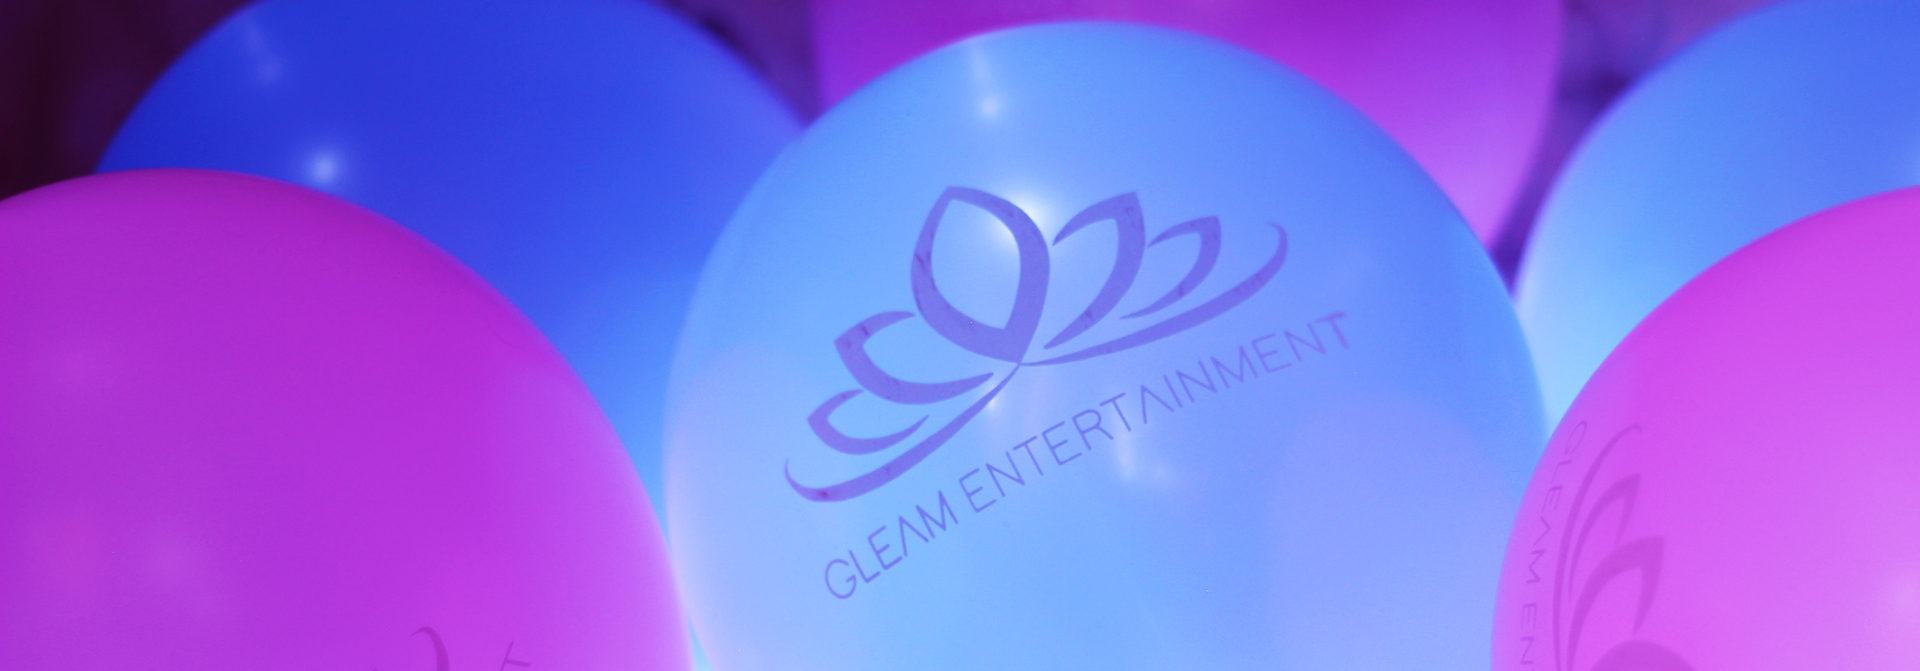 Gleam Entertainment